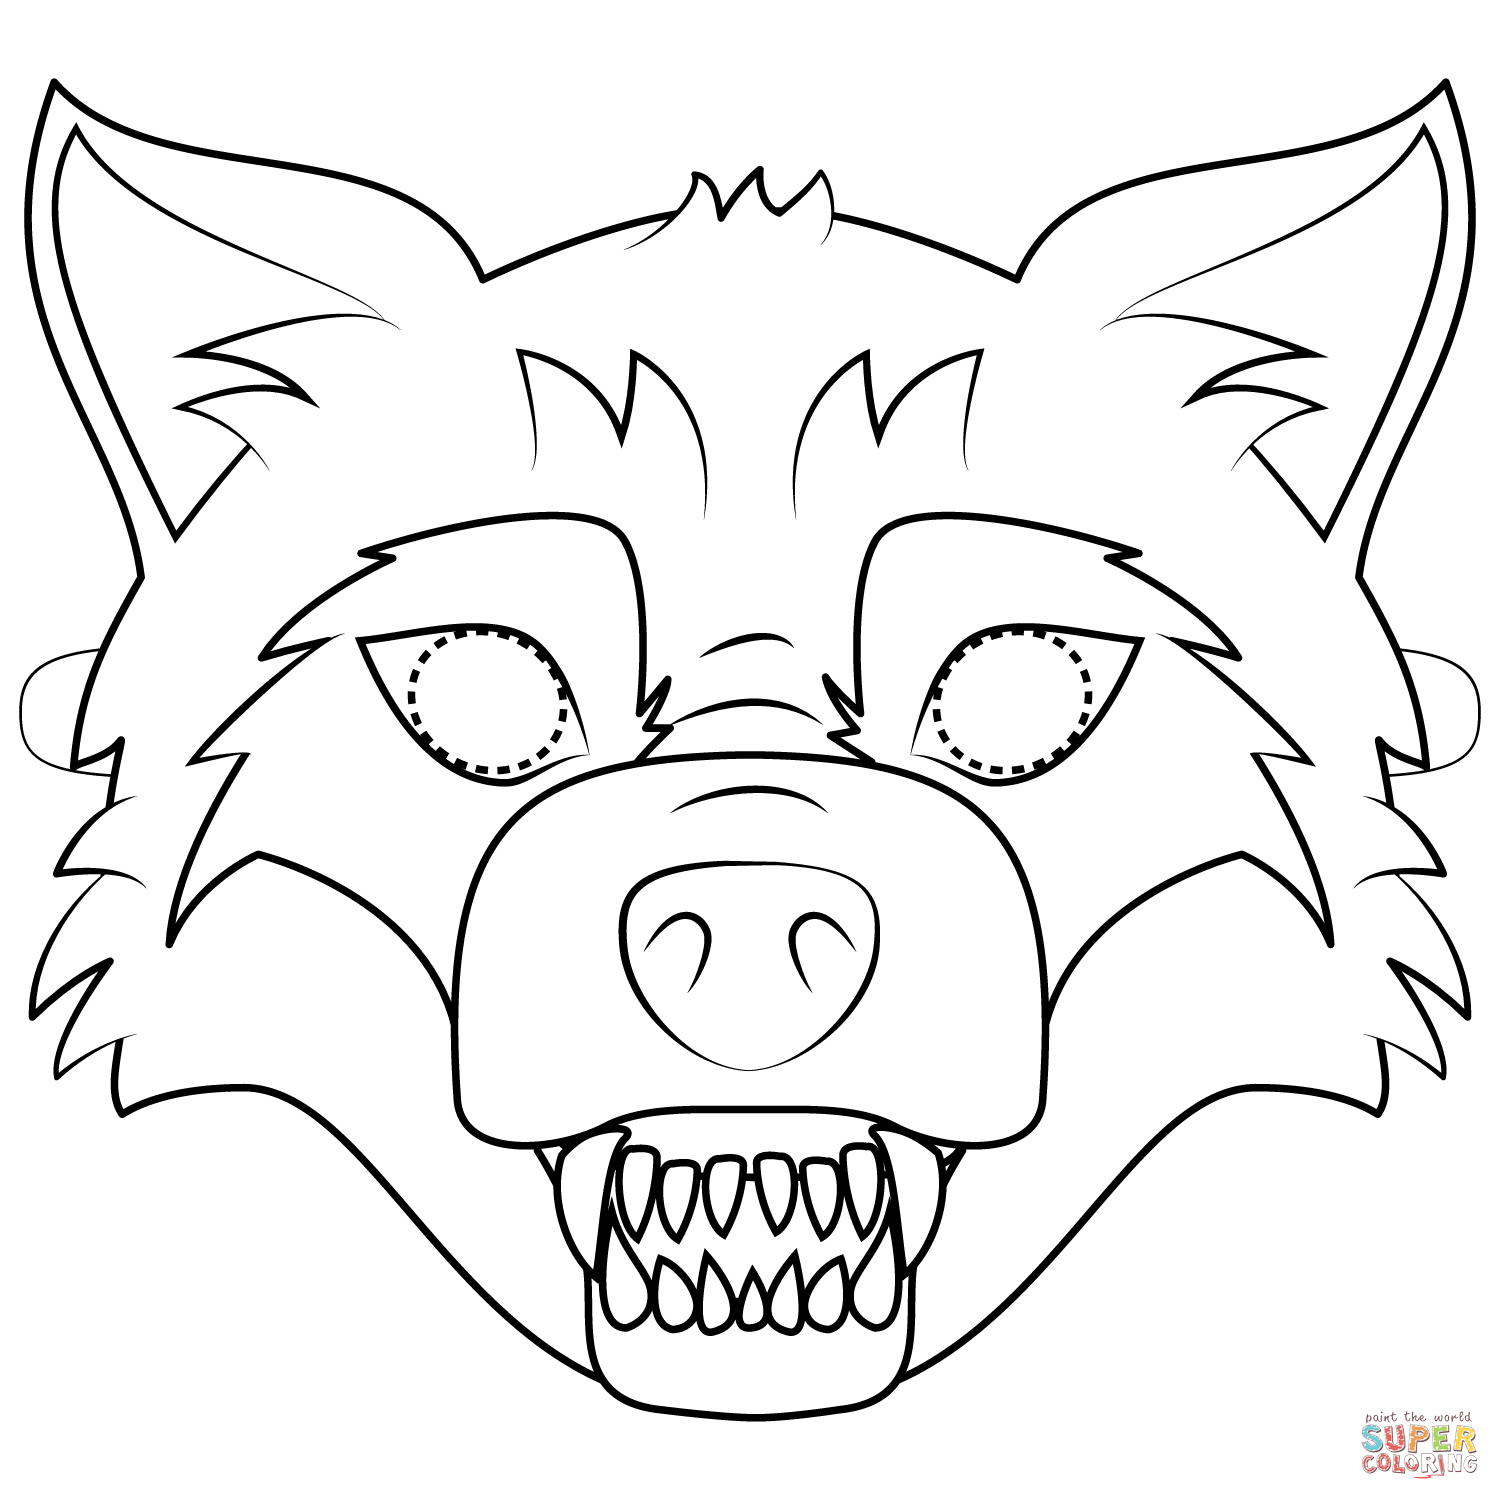 Big Bad Wolf Mask Coloring Page | Free Printable Coloring Pages - Free Printable Wolf Mask